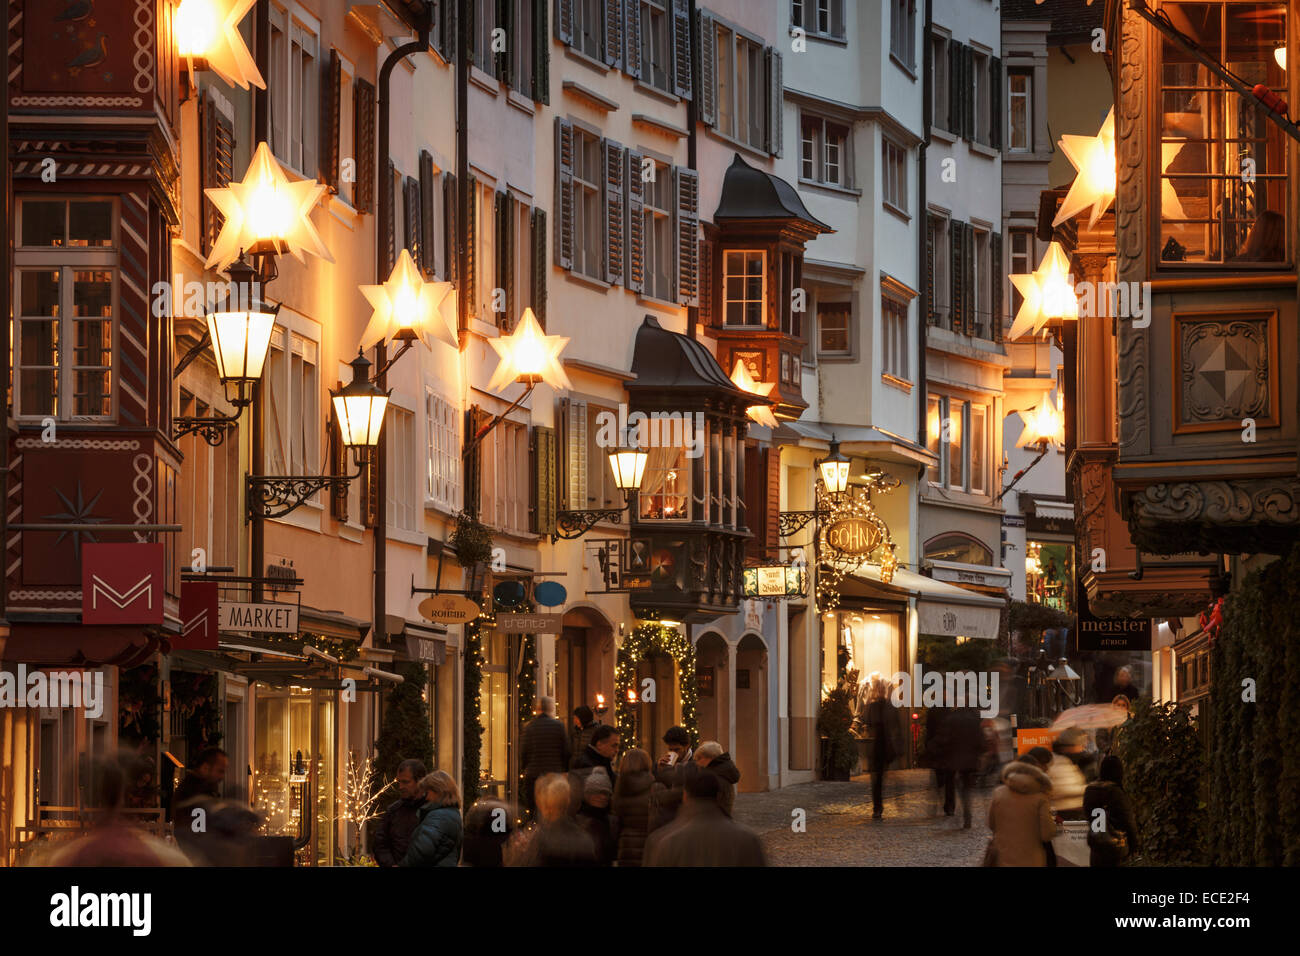 Christmas decoration of Augustinergasse in old town of Zurich, Switzerland. - Stock Image